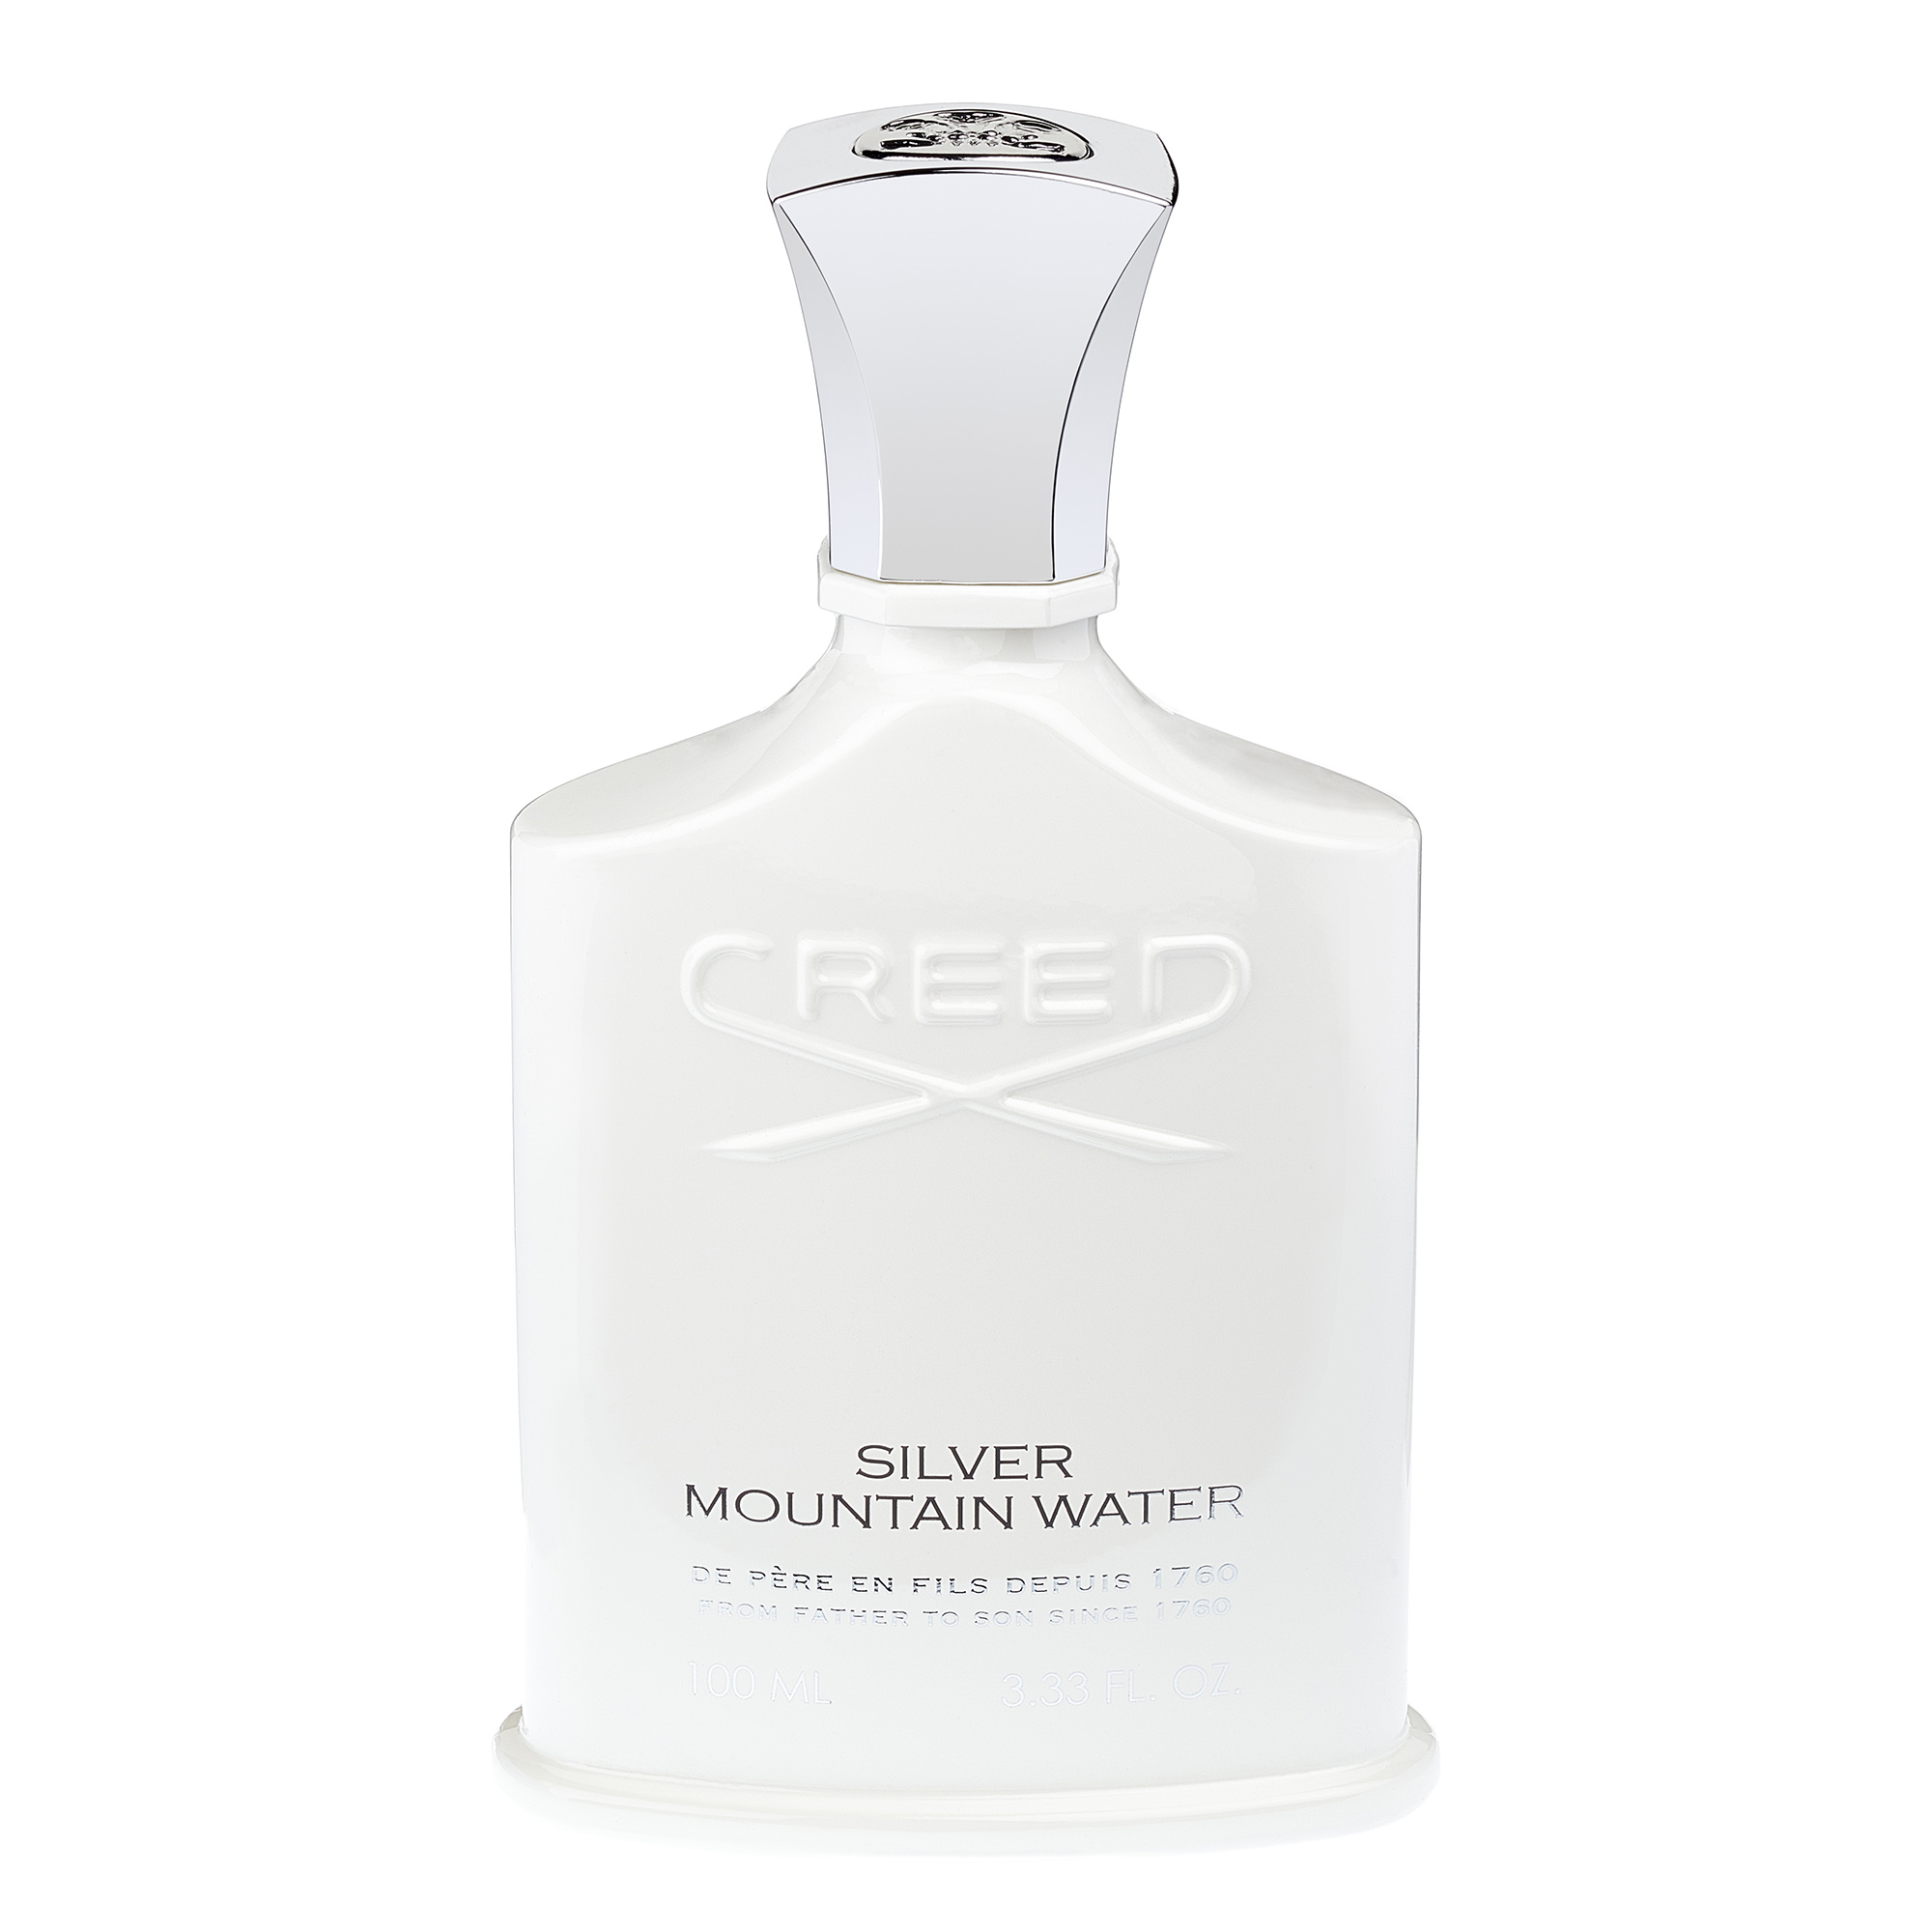 SILVER MOUNTAIN WATER 100ml Spray